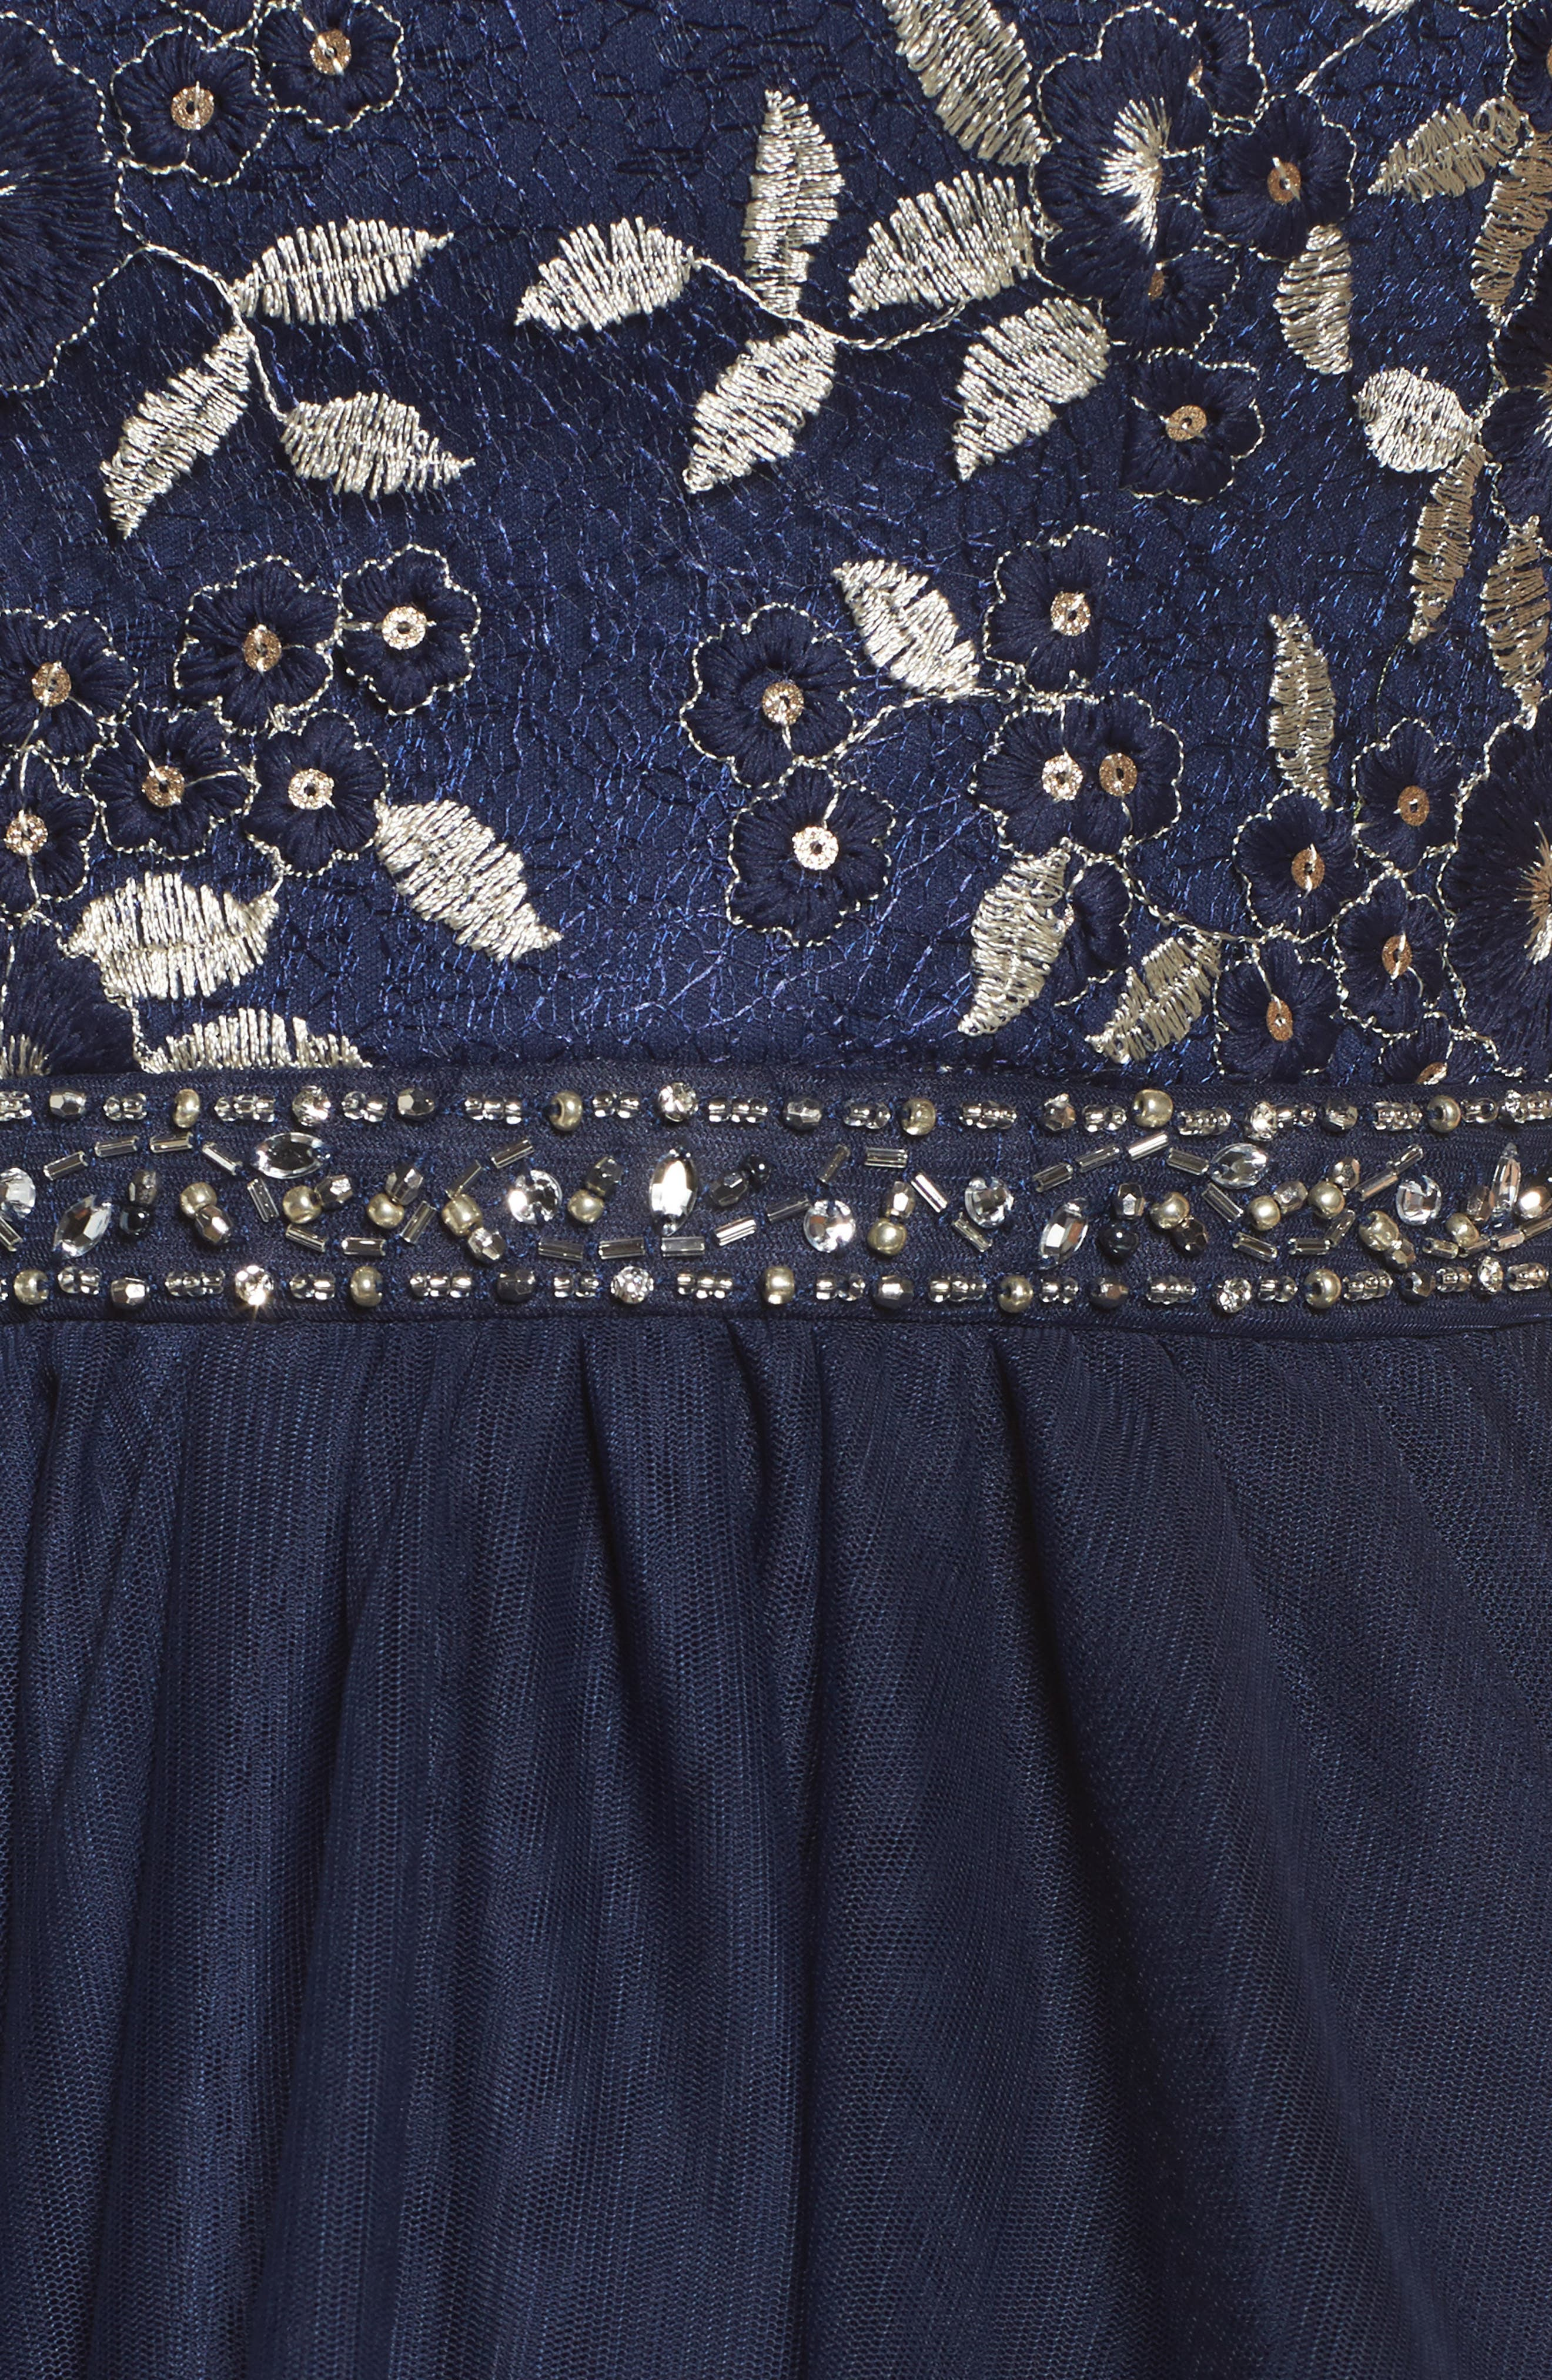 Strapless Lace & Tulle Gown,                             Alternate thumbnail 5, color,                             NAVY/ CHAMPAGNE